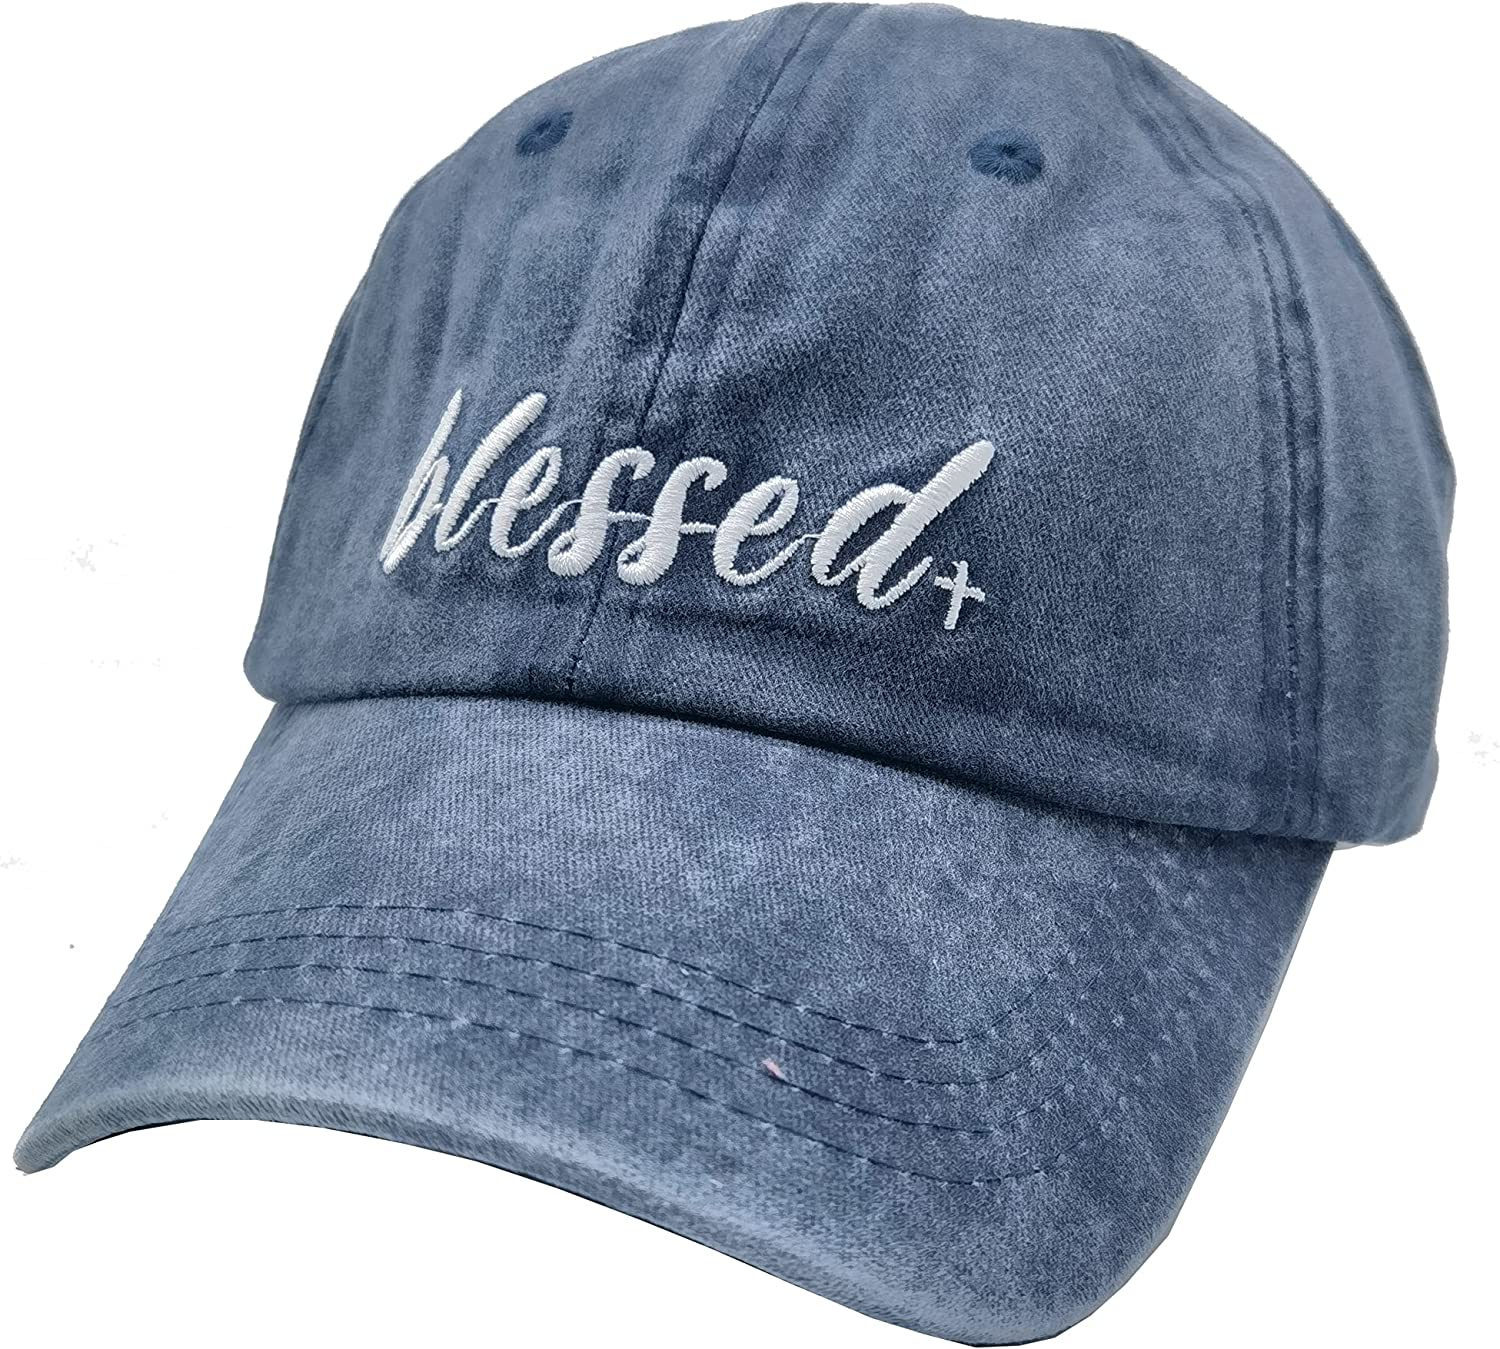 Waldeal Women's Embroidered Blessed Baseball Cap Adjustable Distressed Vintage Summer Faith Dad Hat